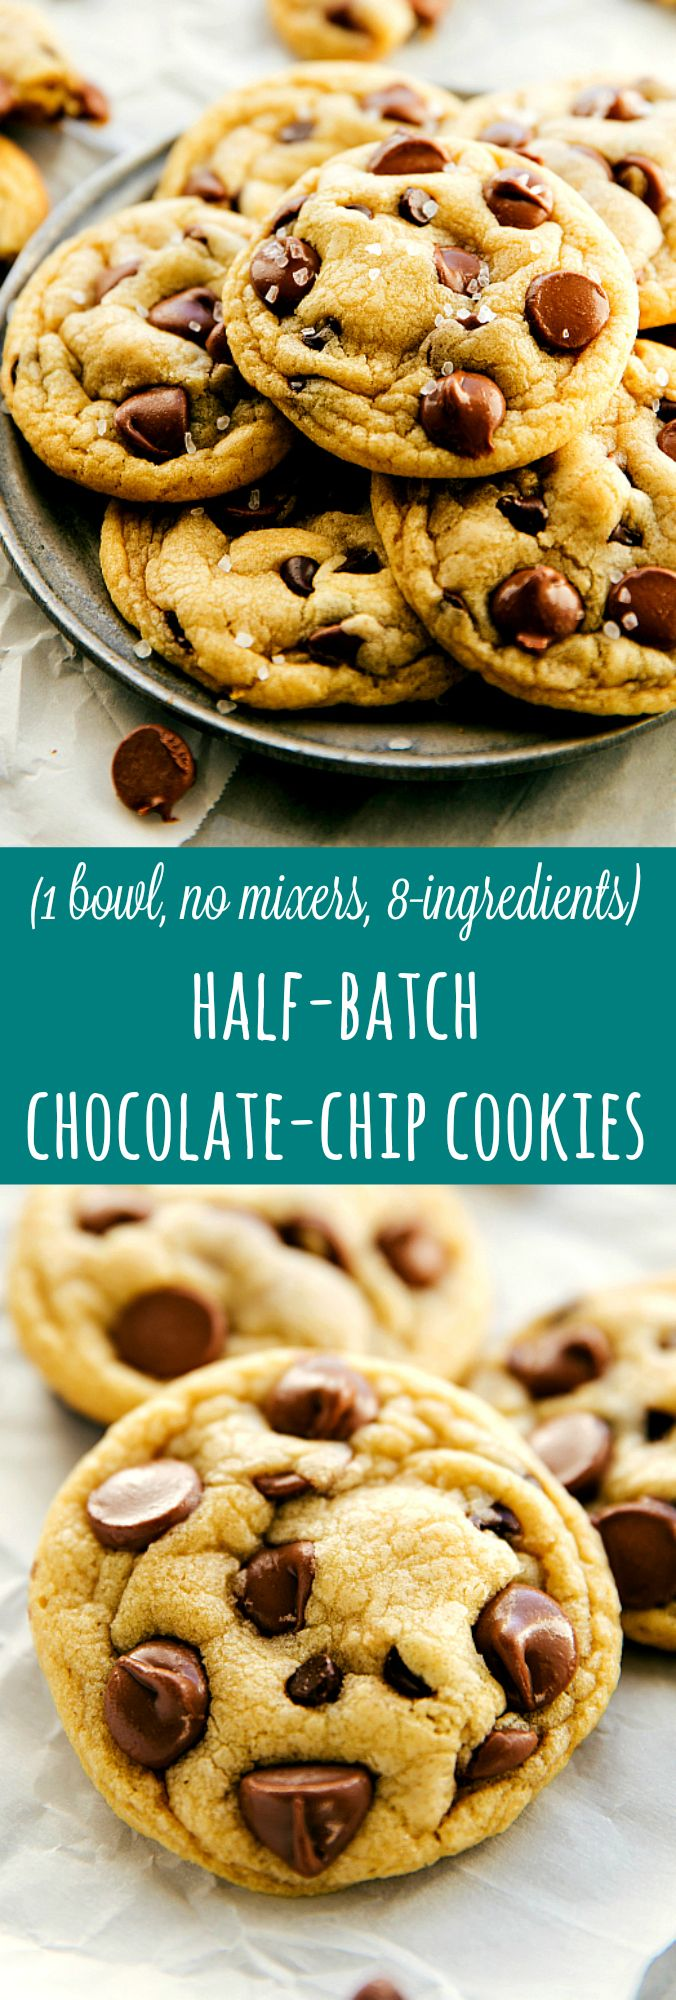 Easiest Half-Batch Chocolate Chip Cookies (One Bowl, No Mixer Required) | Chelsea's Messy Apron Commenter said Well this recipe is amazing! Perfect cookies, the best ones I've ever made.